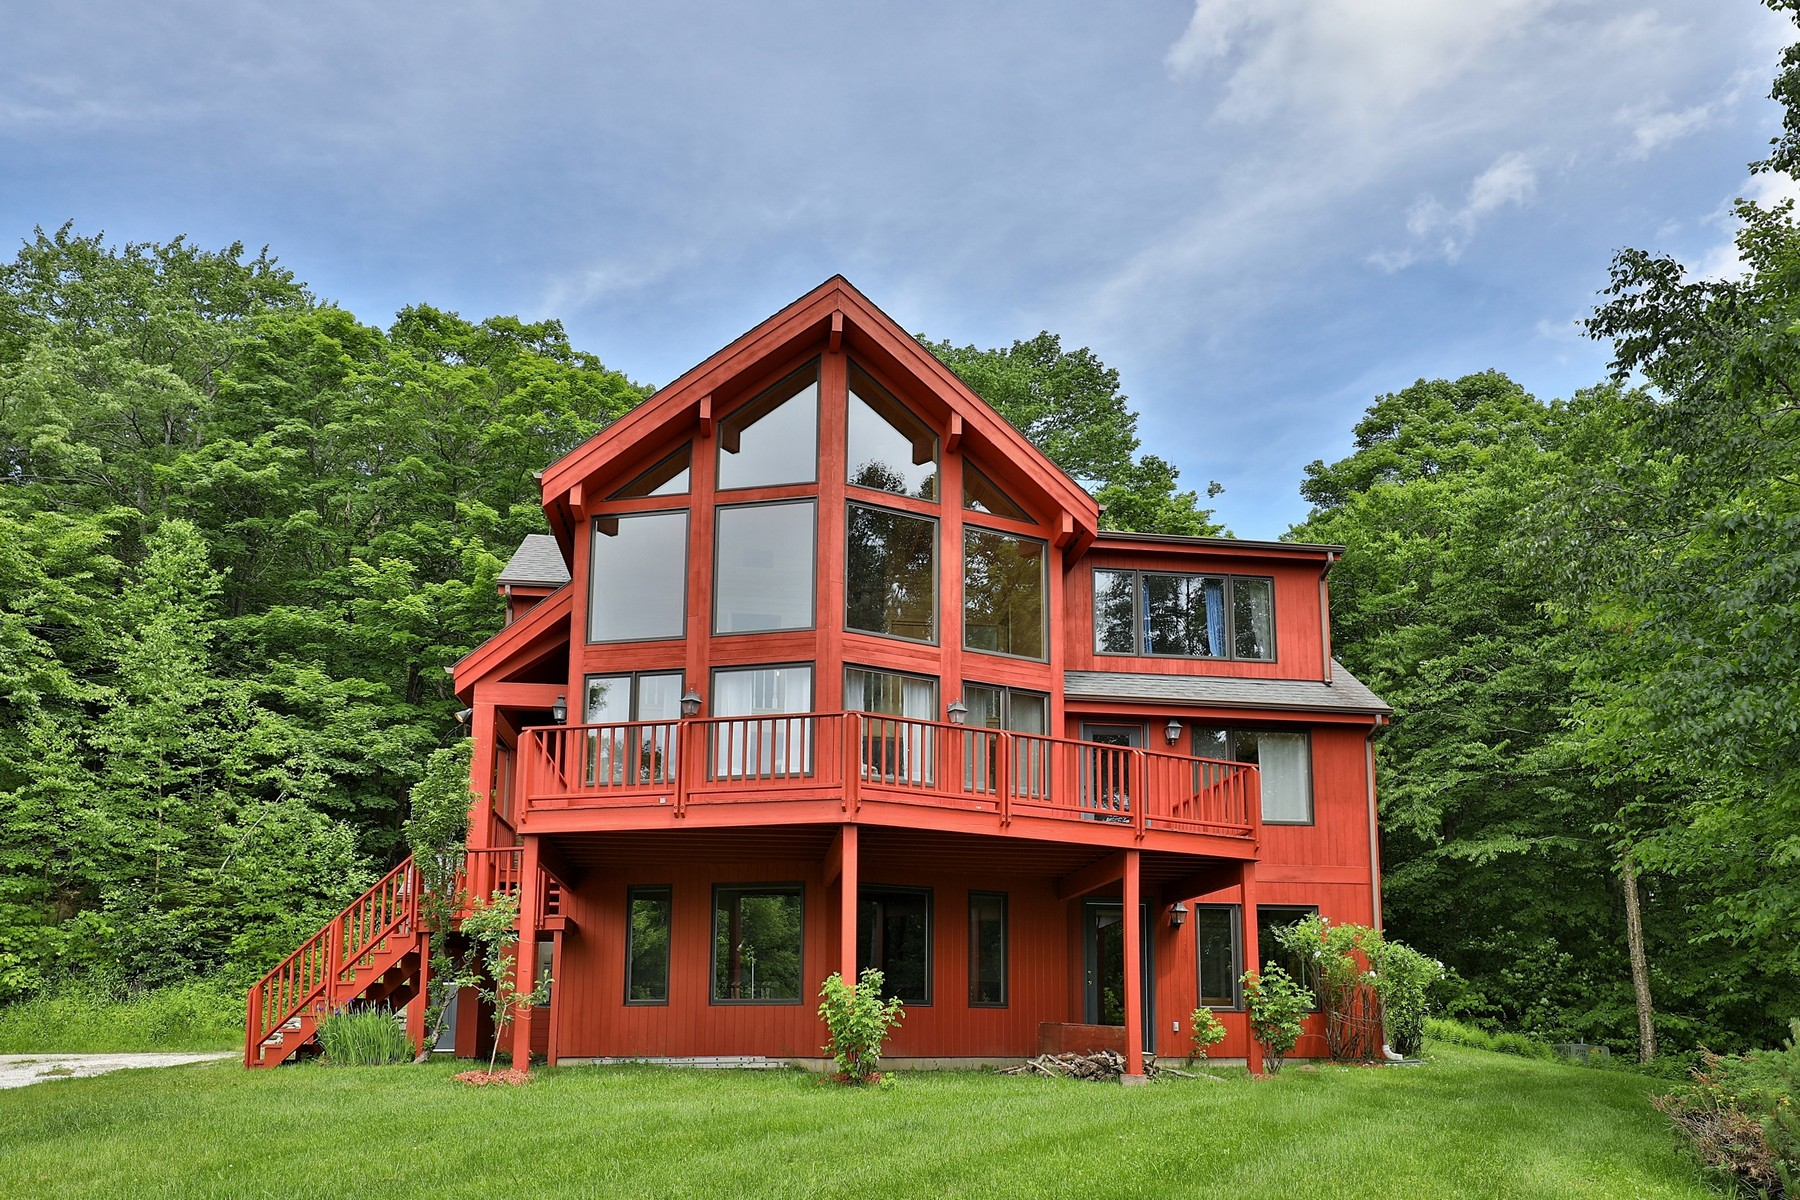 Single Family Homes for Sale at Vermont Country Living 898 Ccc Rd Shrewsbury, Vermont 05738 United States